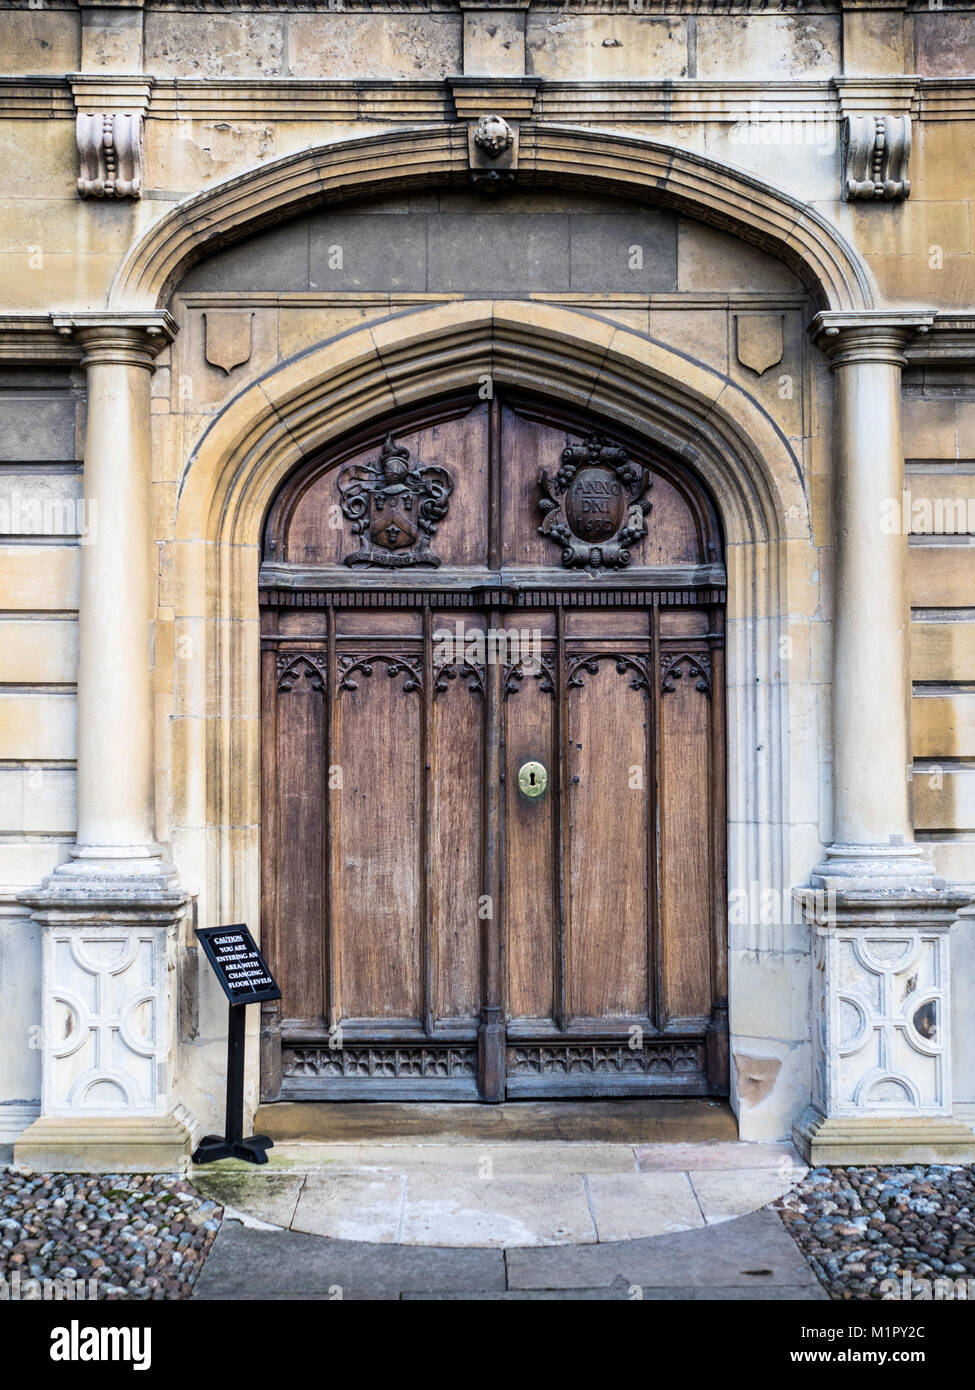 Peterhouse College Cambridge, chapel door. Part of the University of Cambridge the college was founded in 1284. - Stock Image